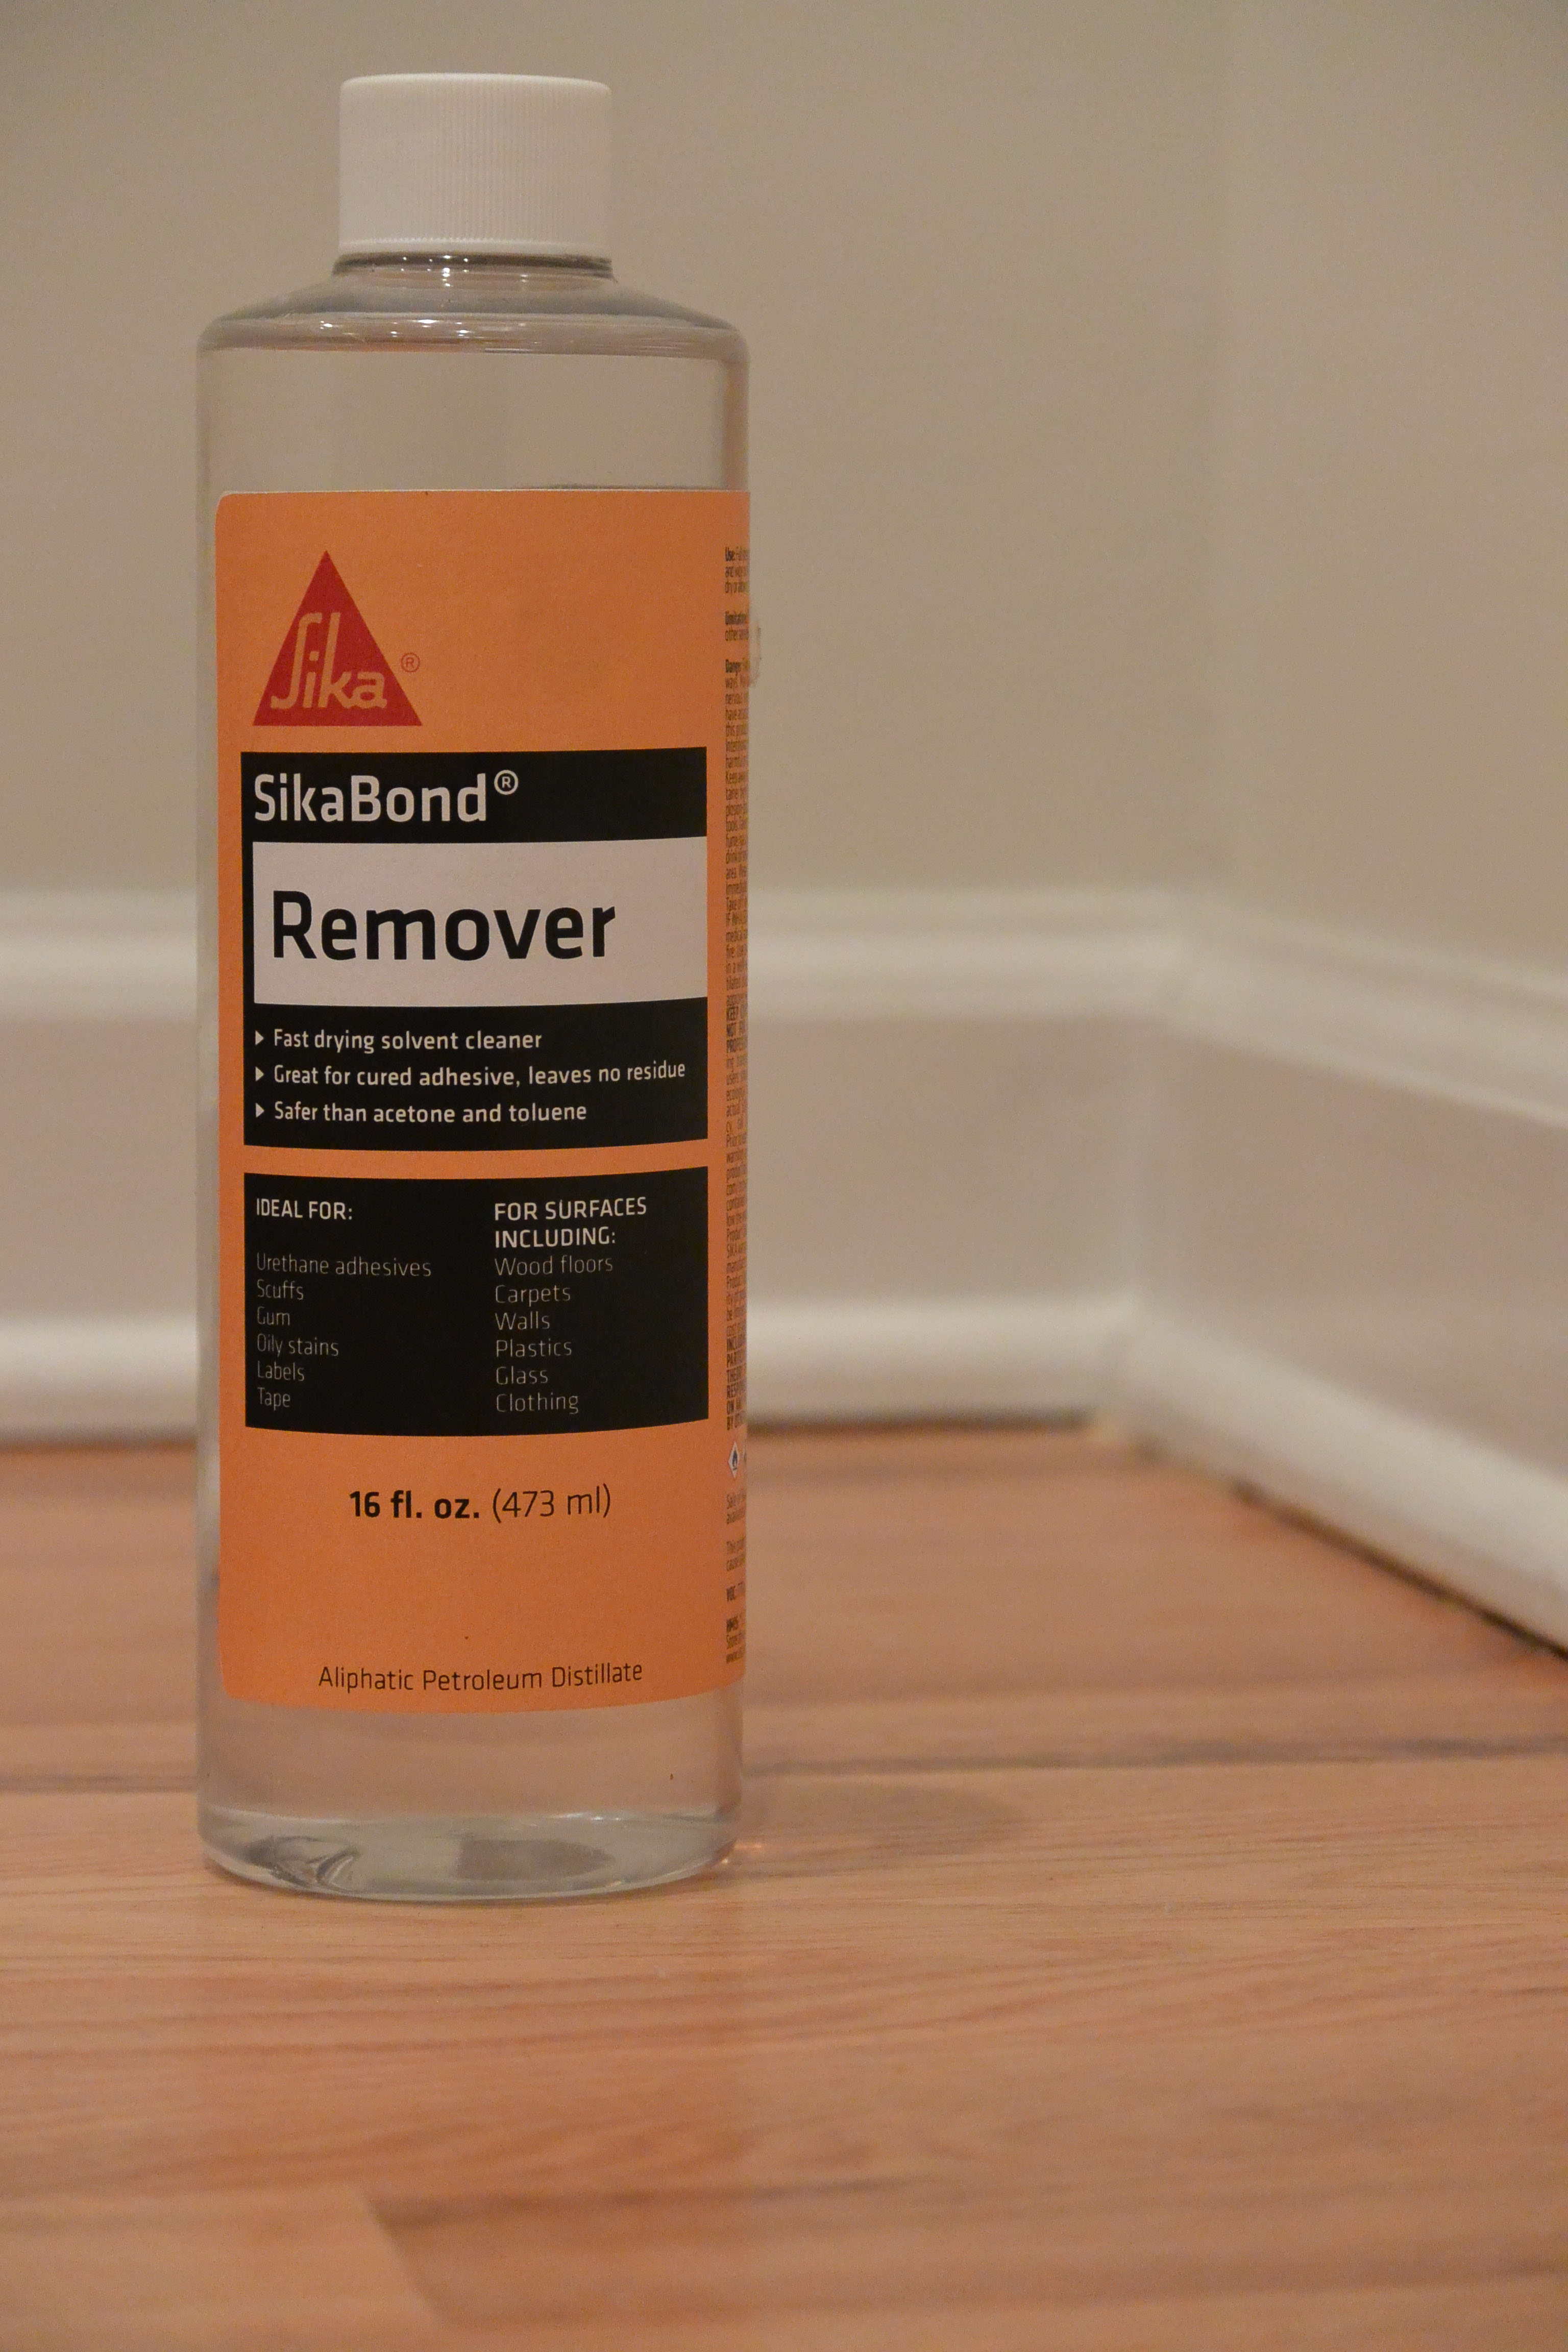 Sikabond 174 Remover The New Fast Drying Cleaner For